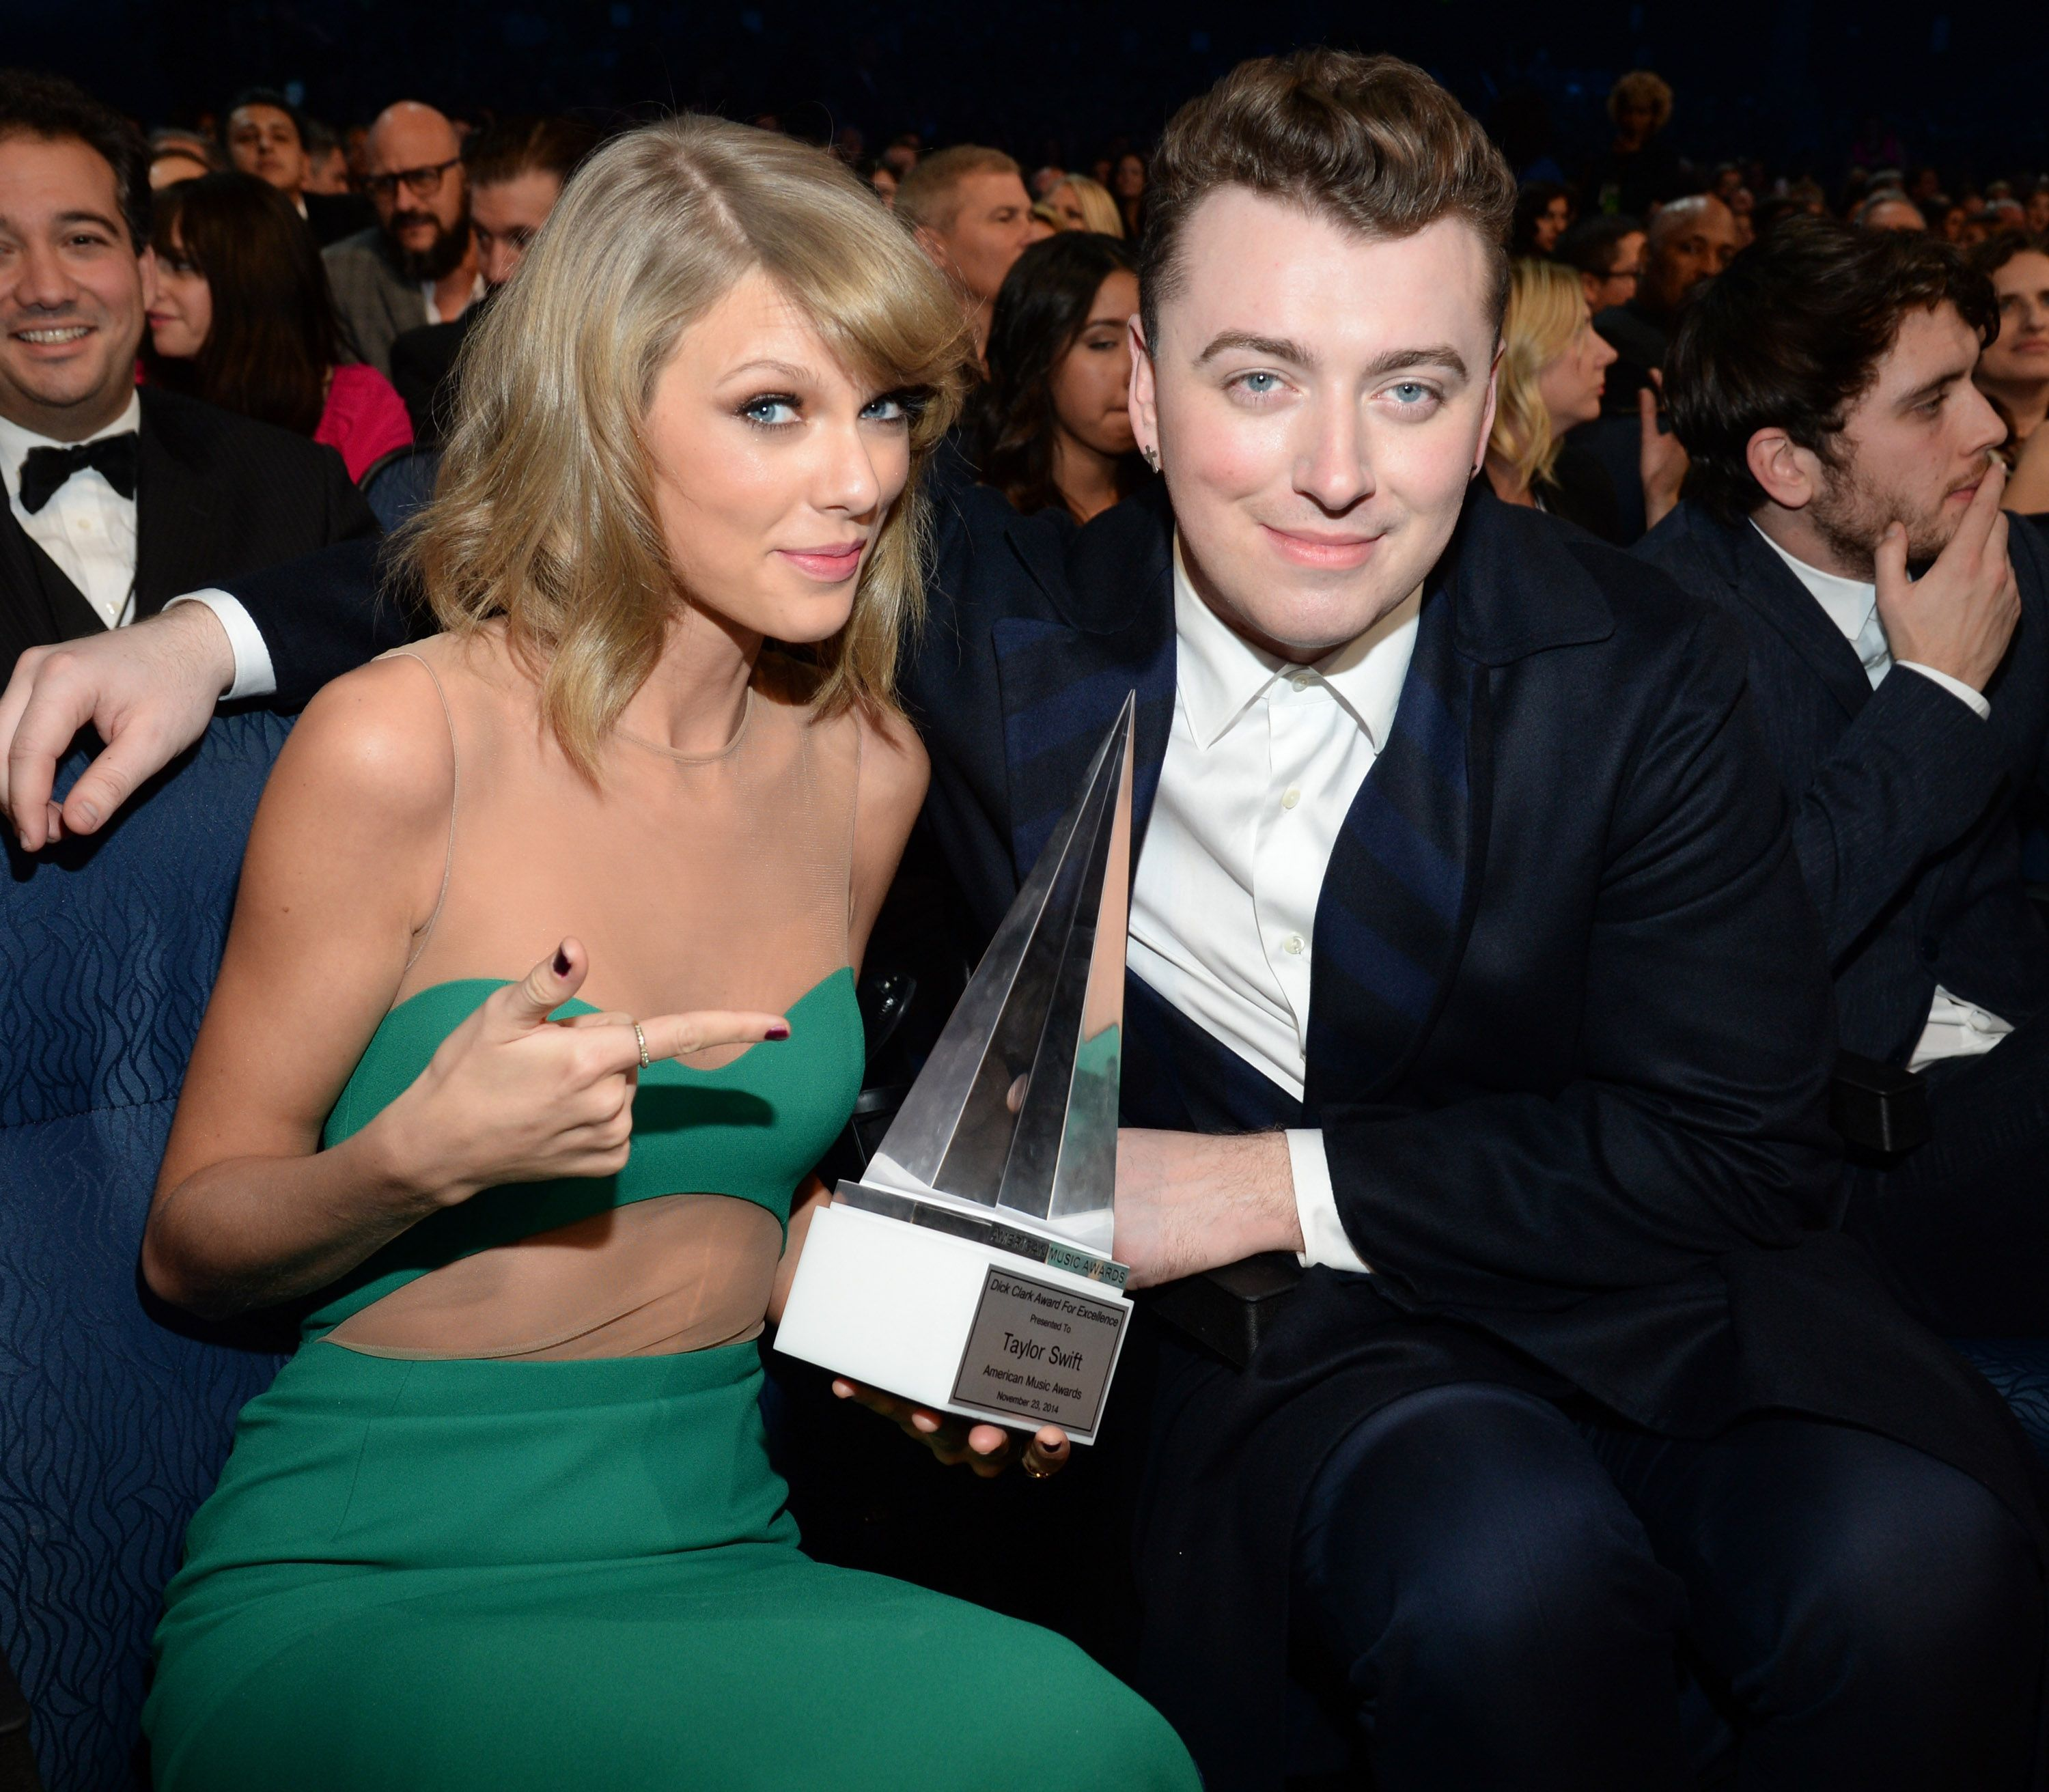 Sam Smith And Taylor Swift Bond Over Ariana Grande - Taylor